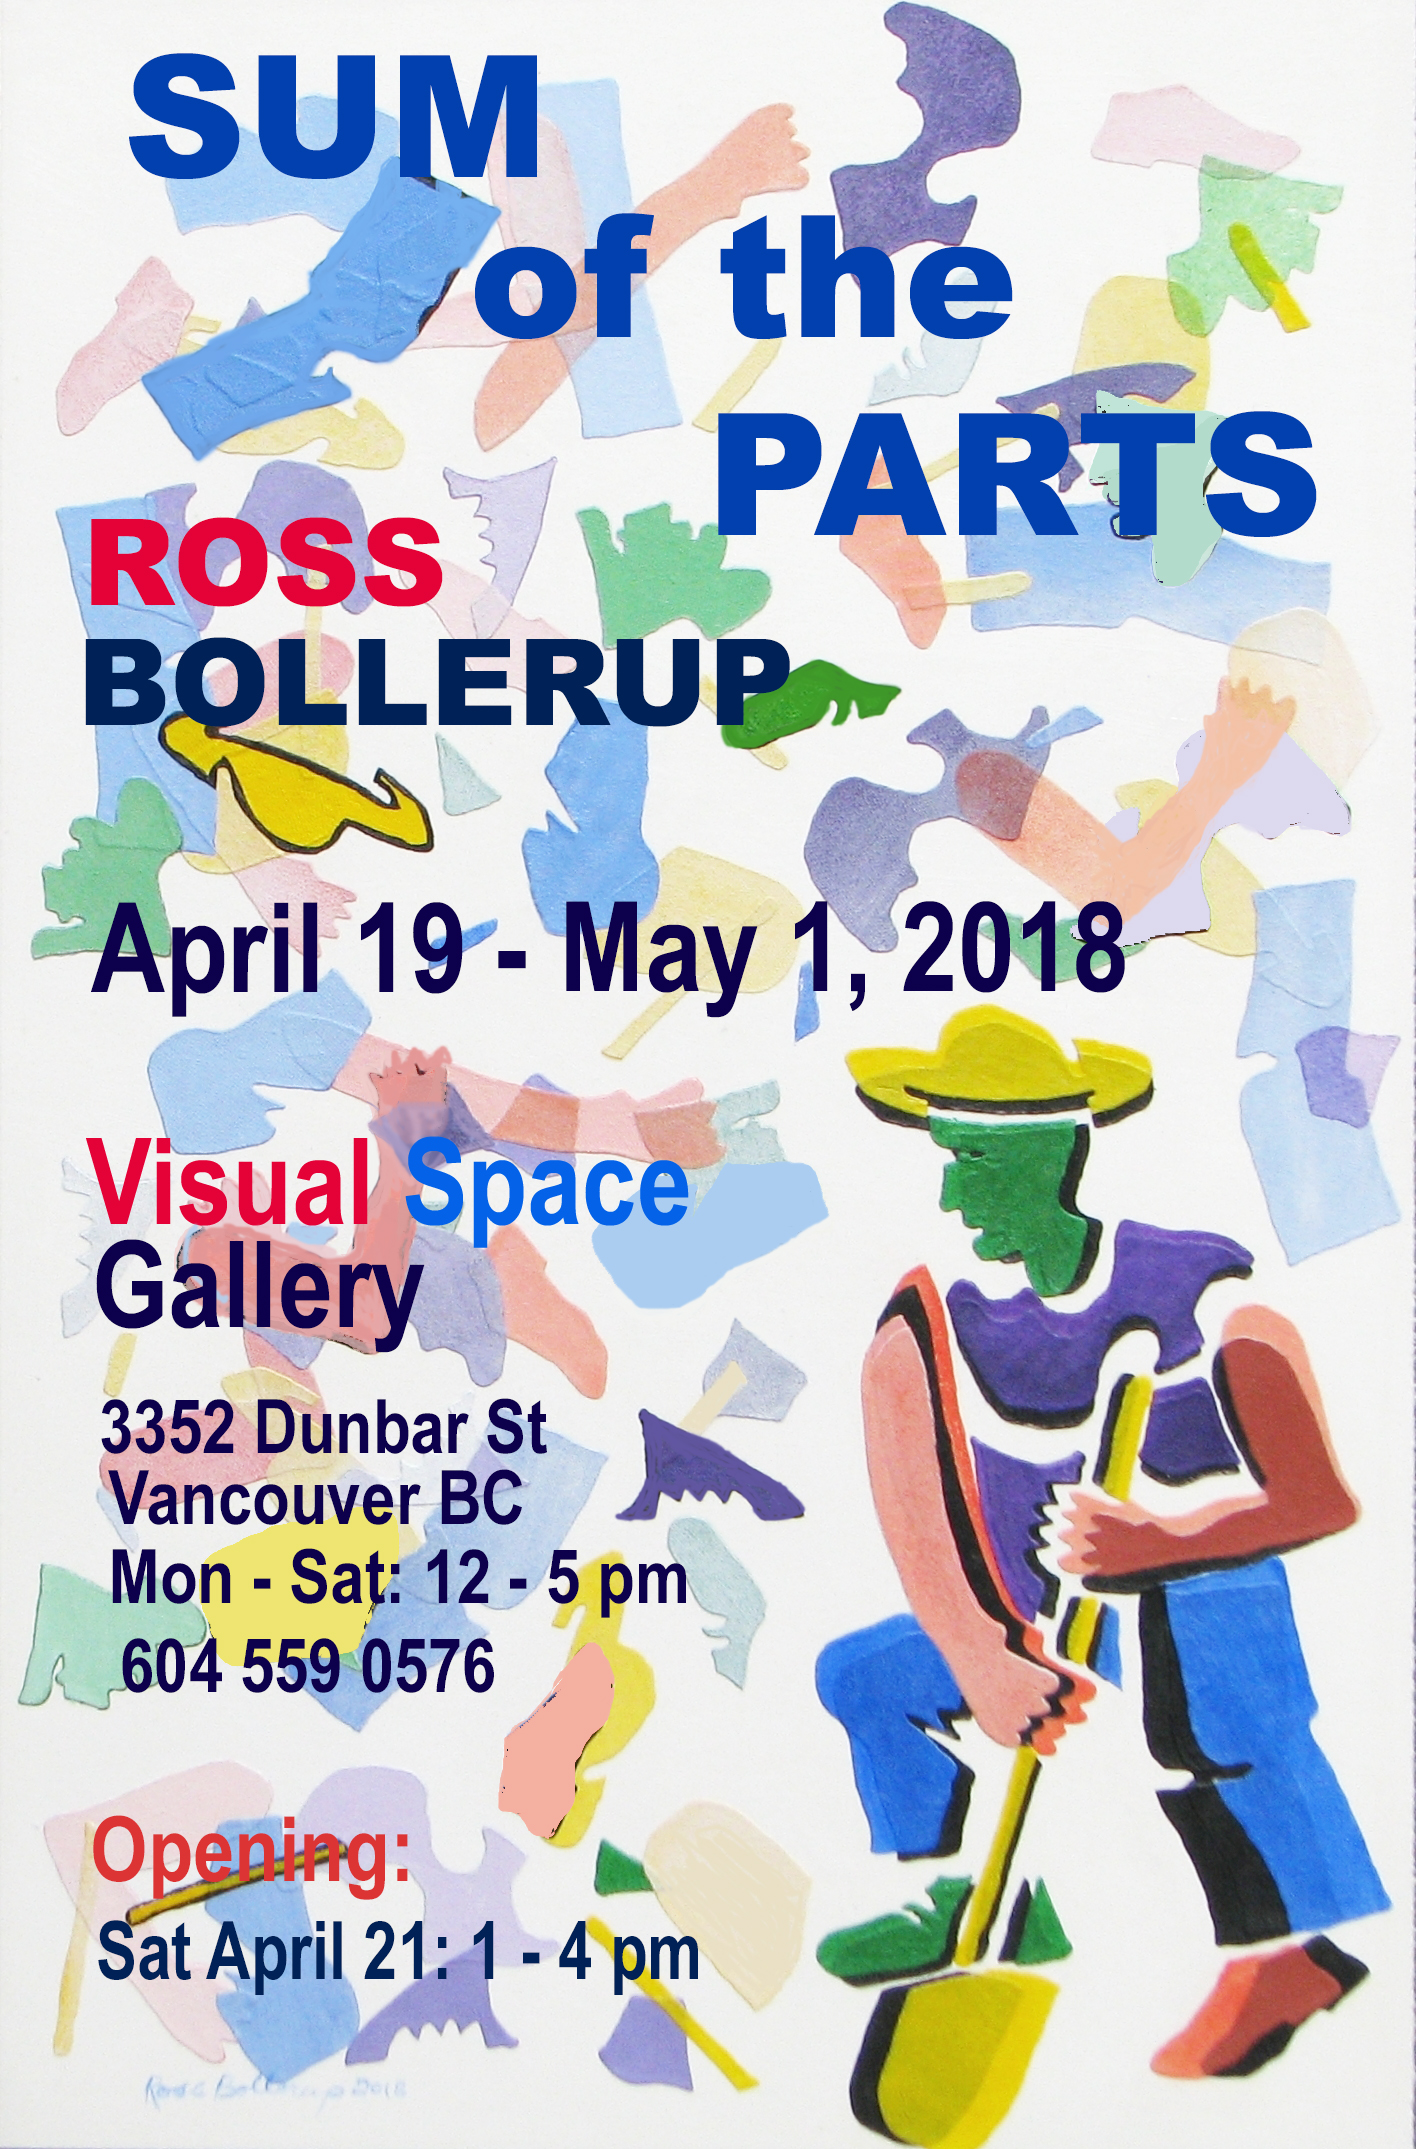 Poster  for Sum of the Parts  Ross Bollerup